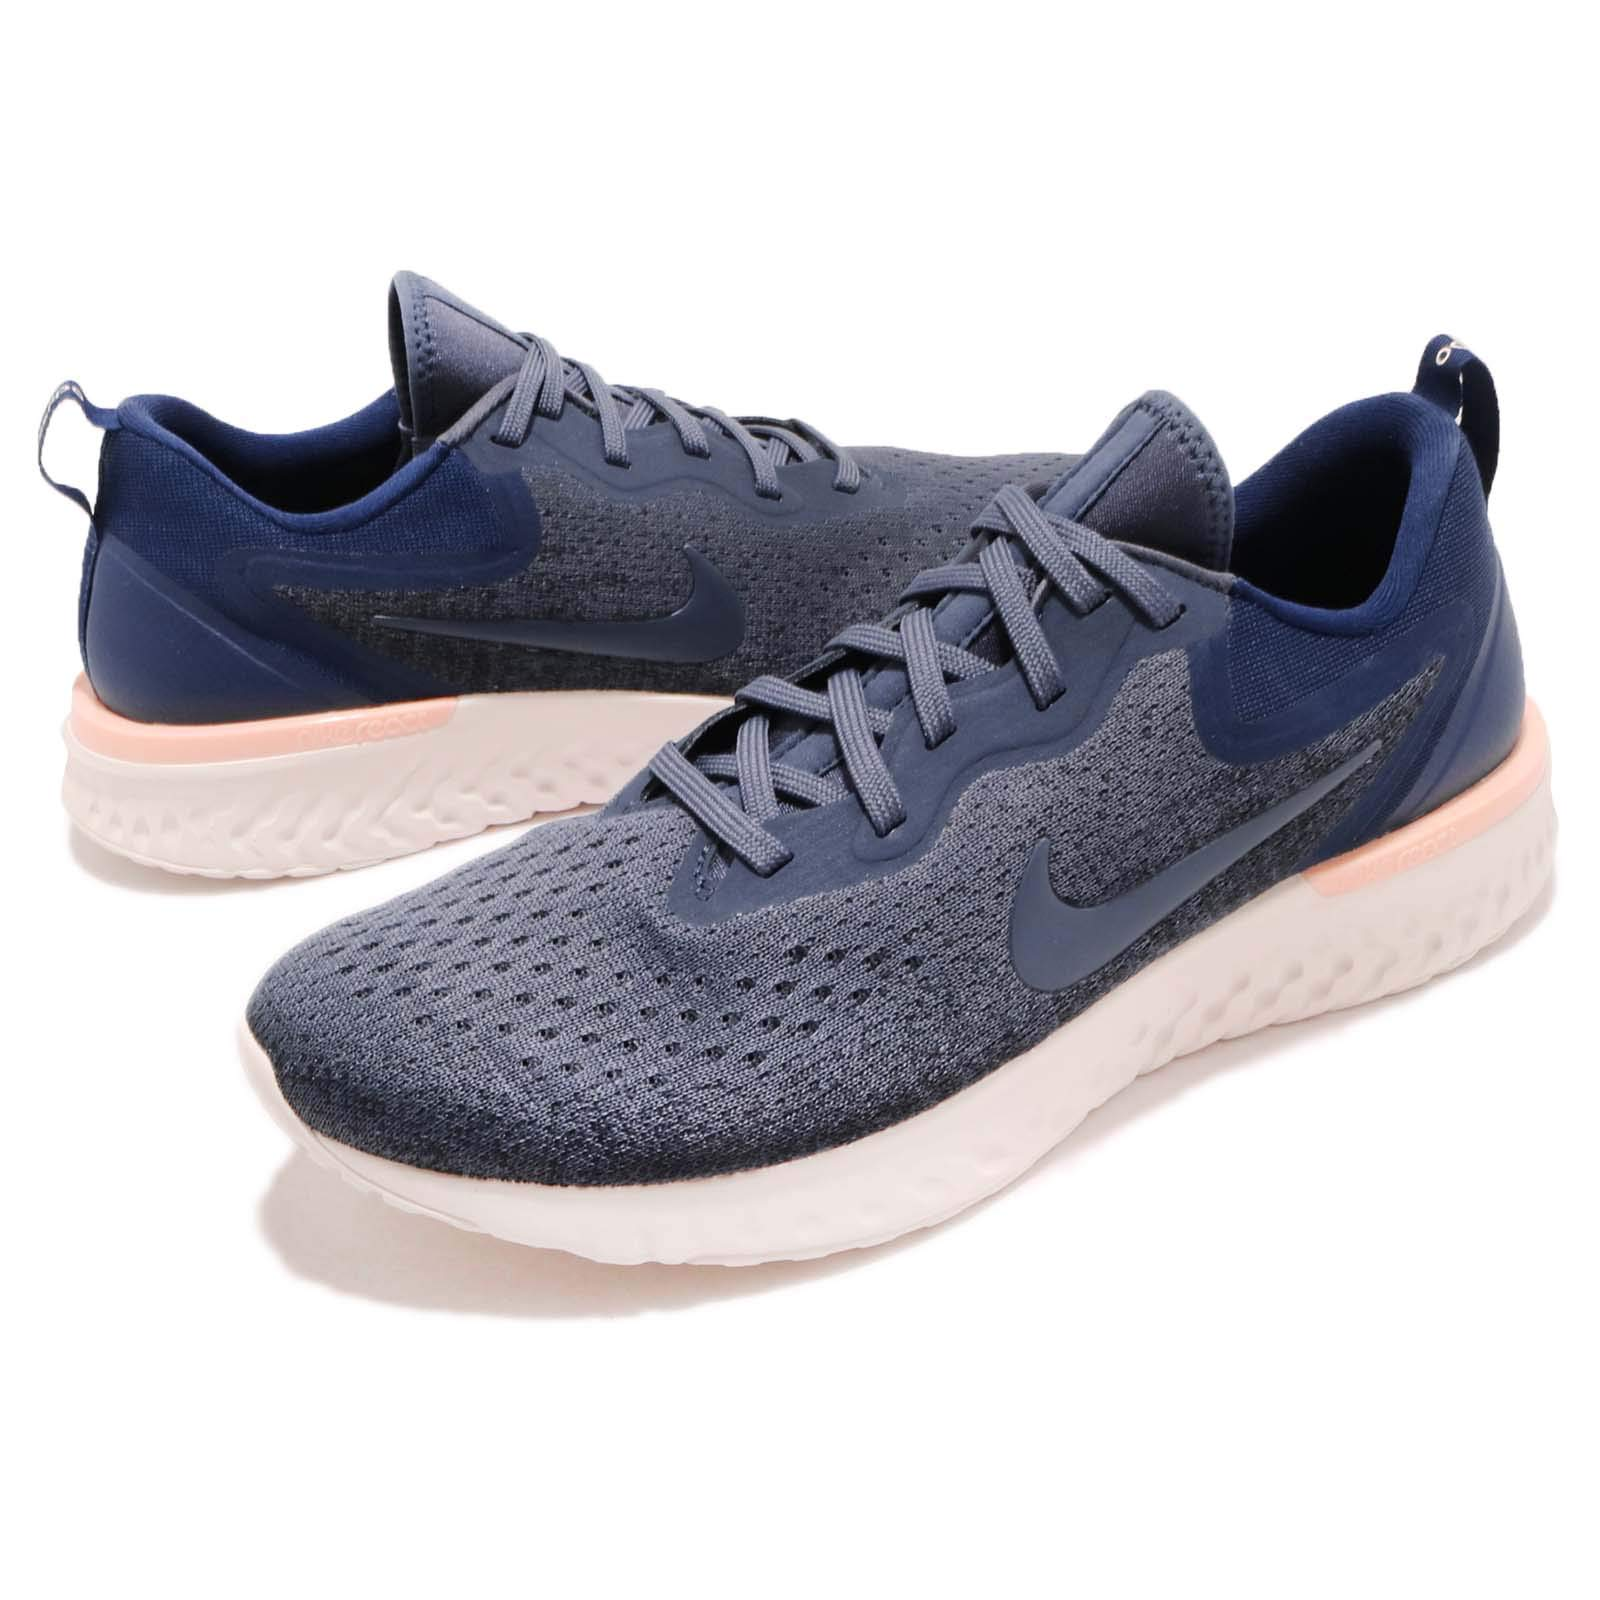 Nike Odyssey React Mens Running Trainers AO9819 Sneakers Shoes (UK 6 US 6.5 EU 39, Thunder Blue 403) by Nike (Image #6)